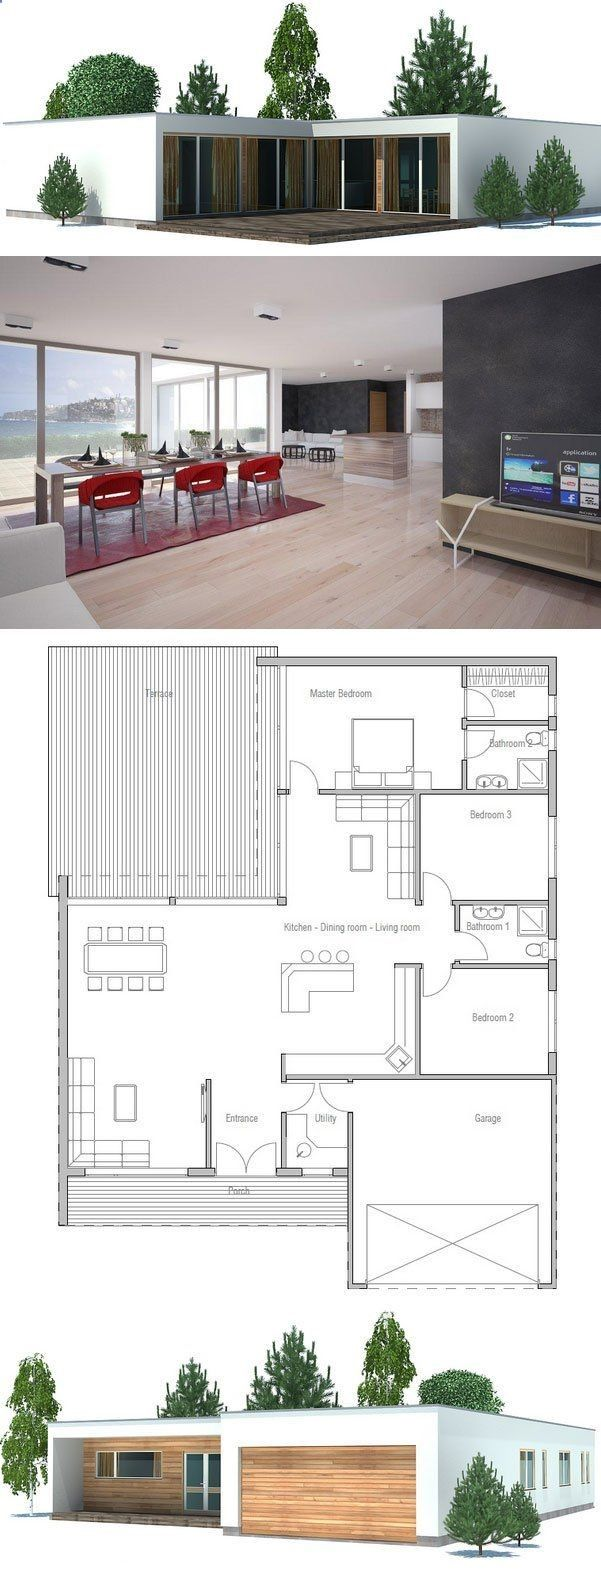 388 best wohnen images on Pinterest | Floor plans, Future house and ...